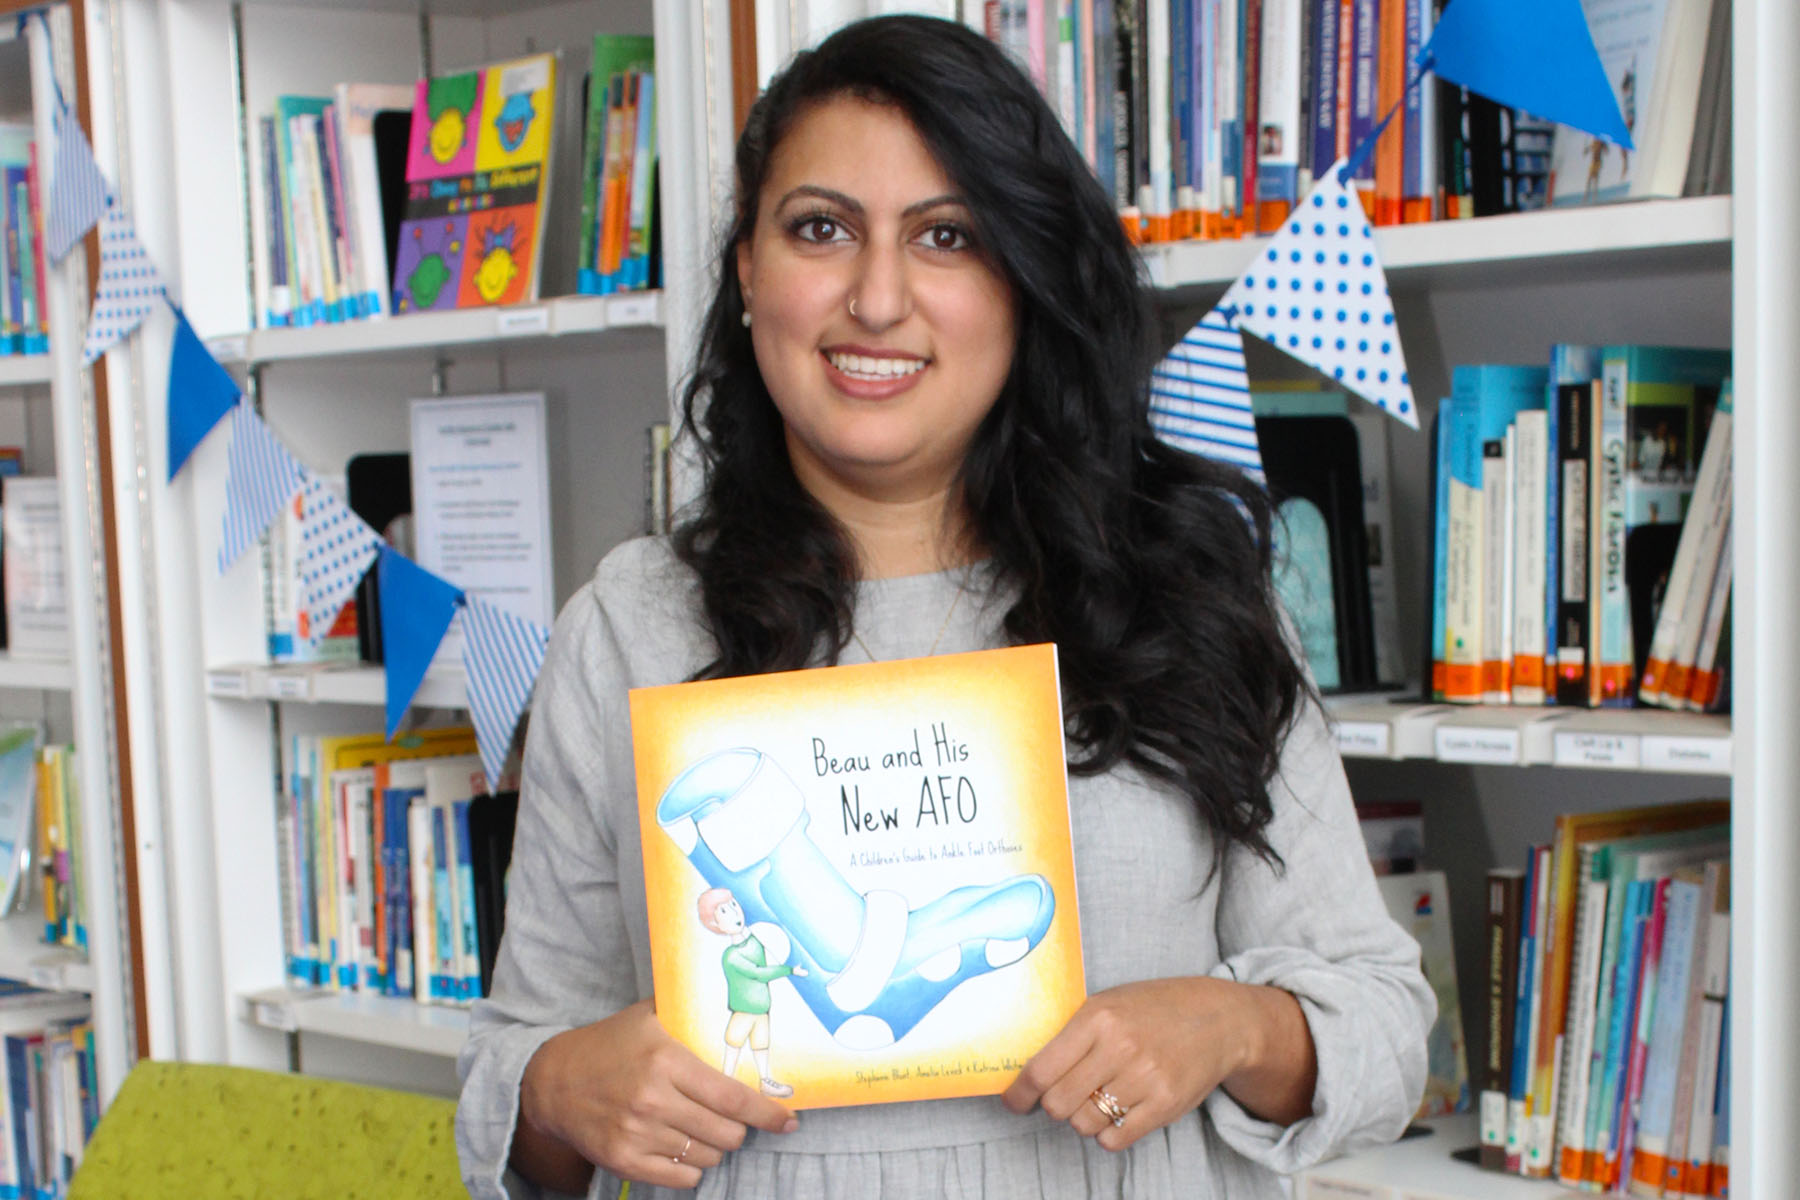 Author Stephanie Blunt with her children's book